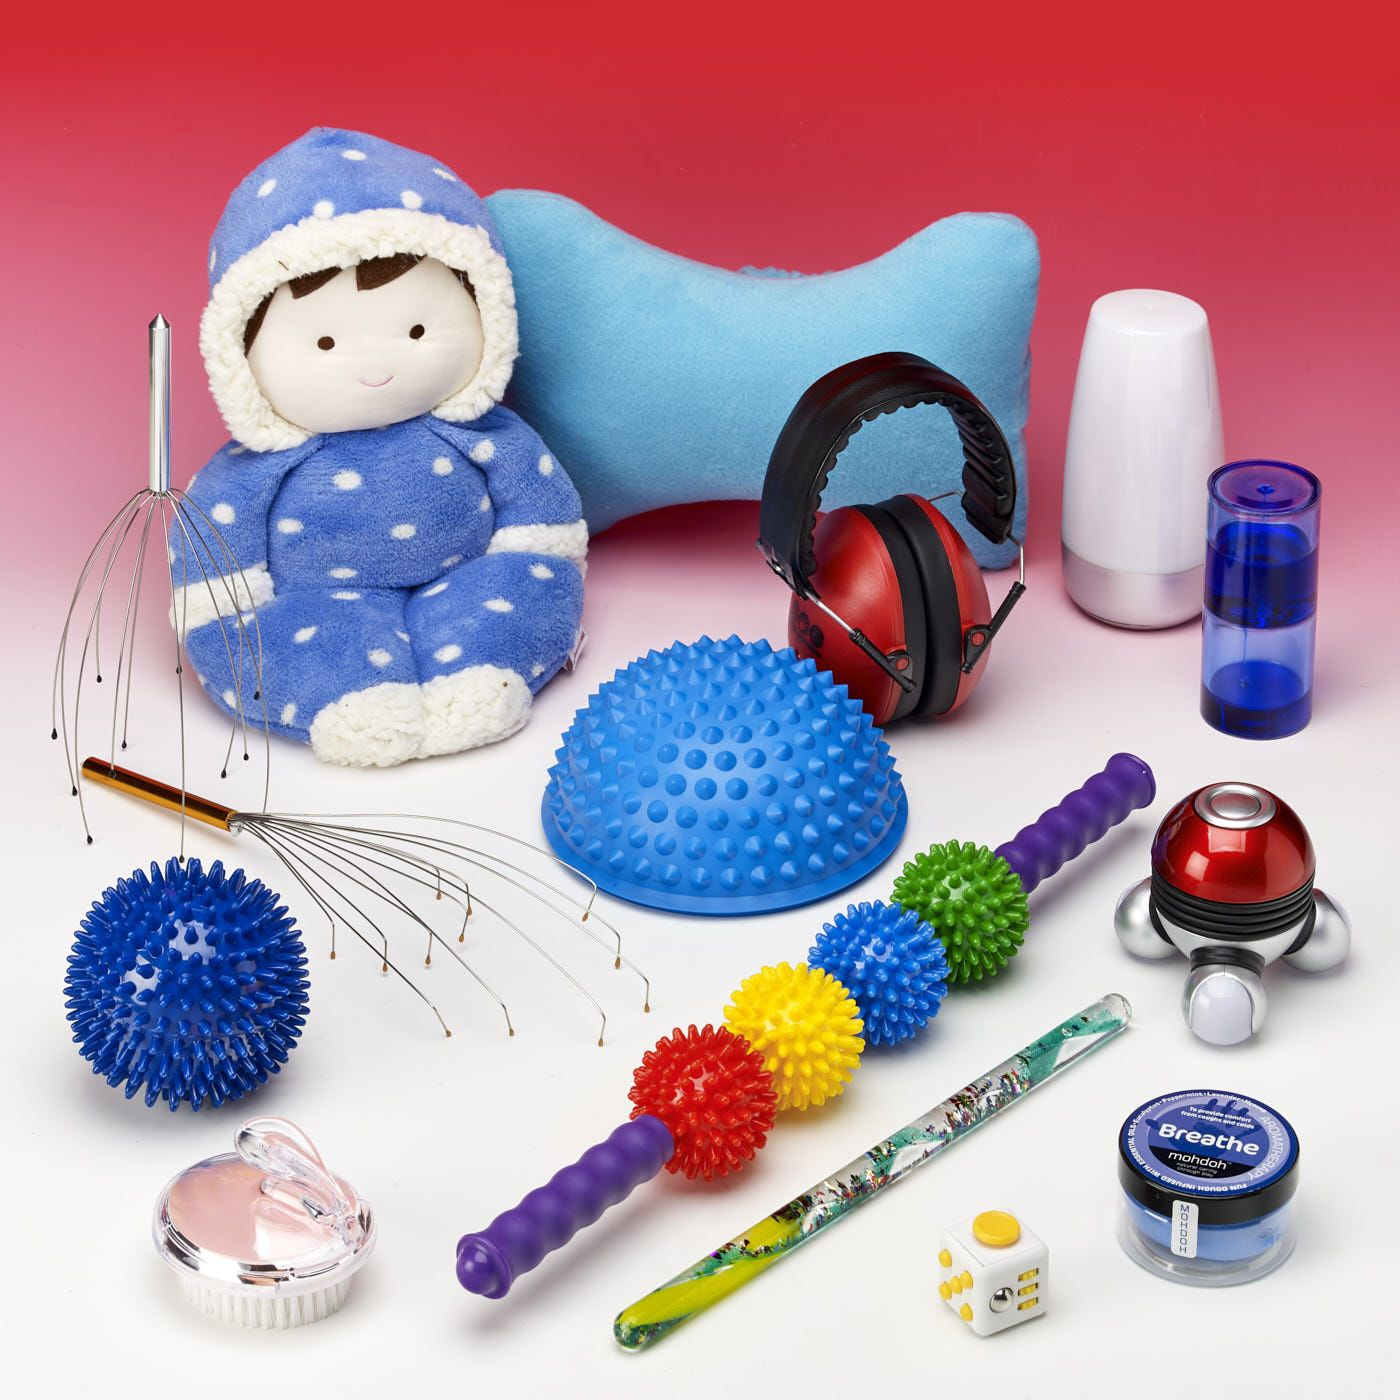 Relaxation Exploration Bag - NEW Revised Contents